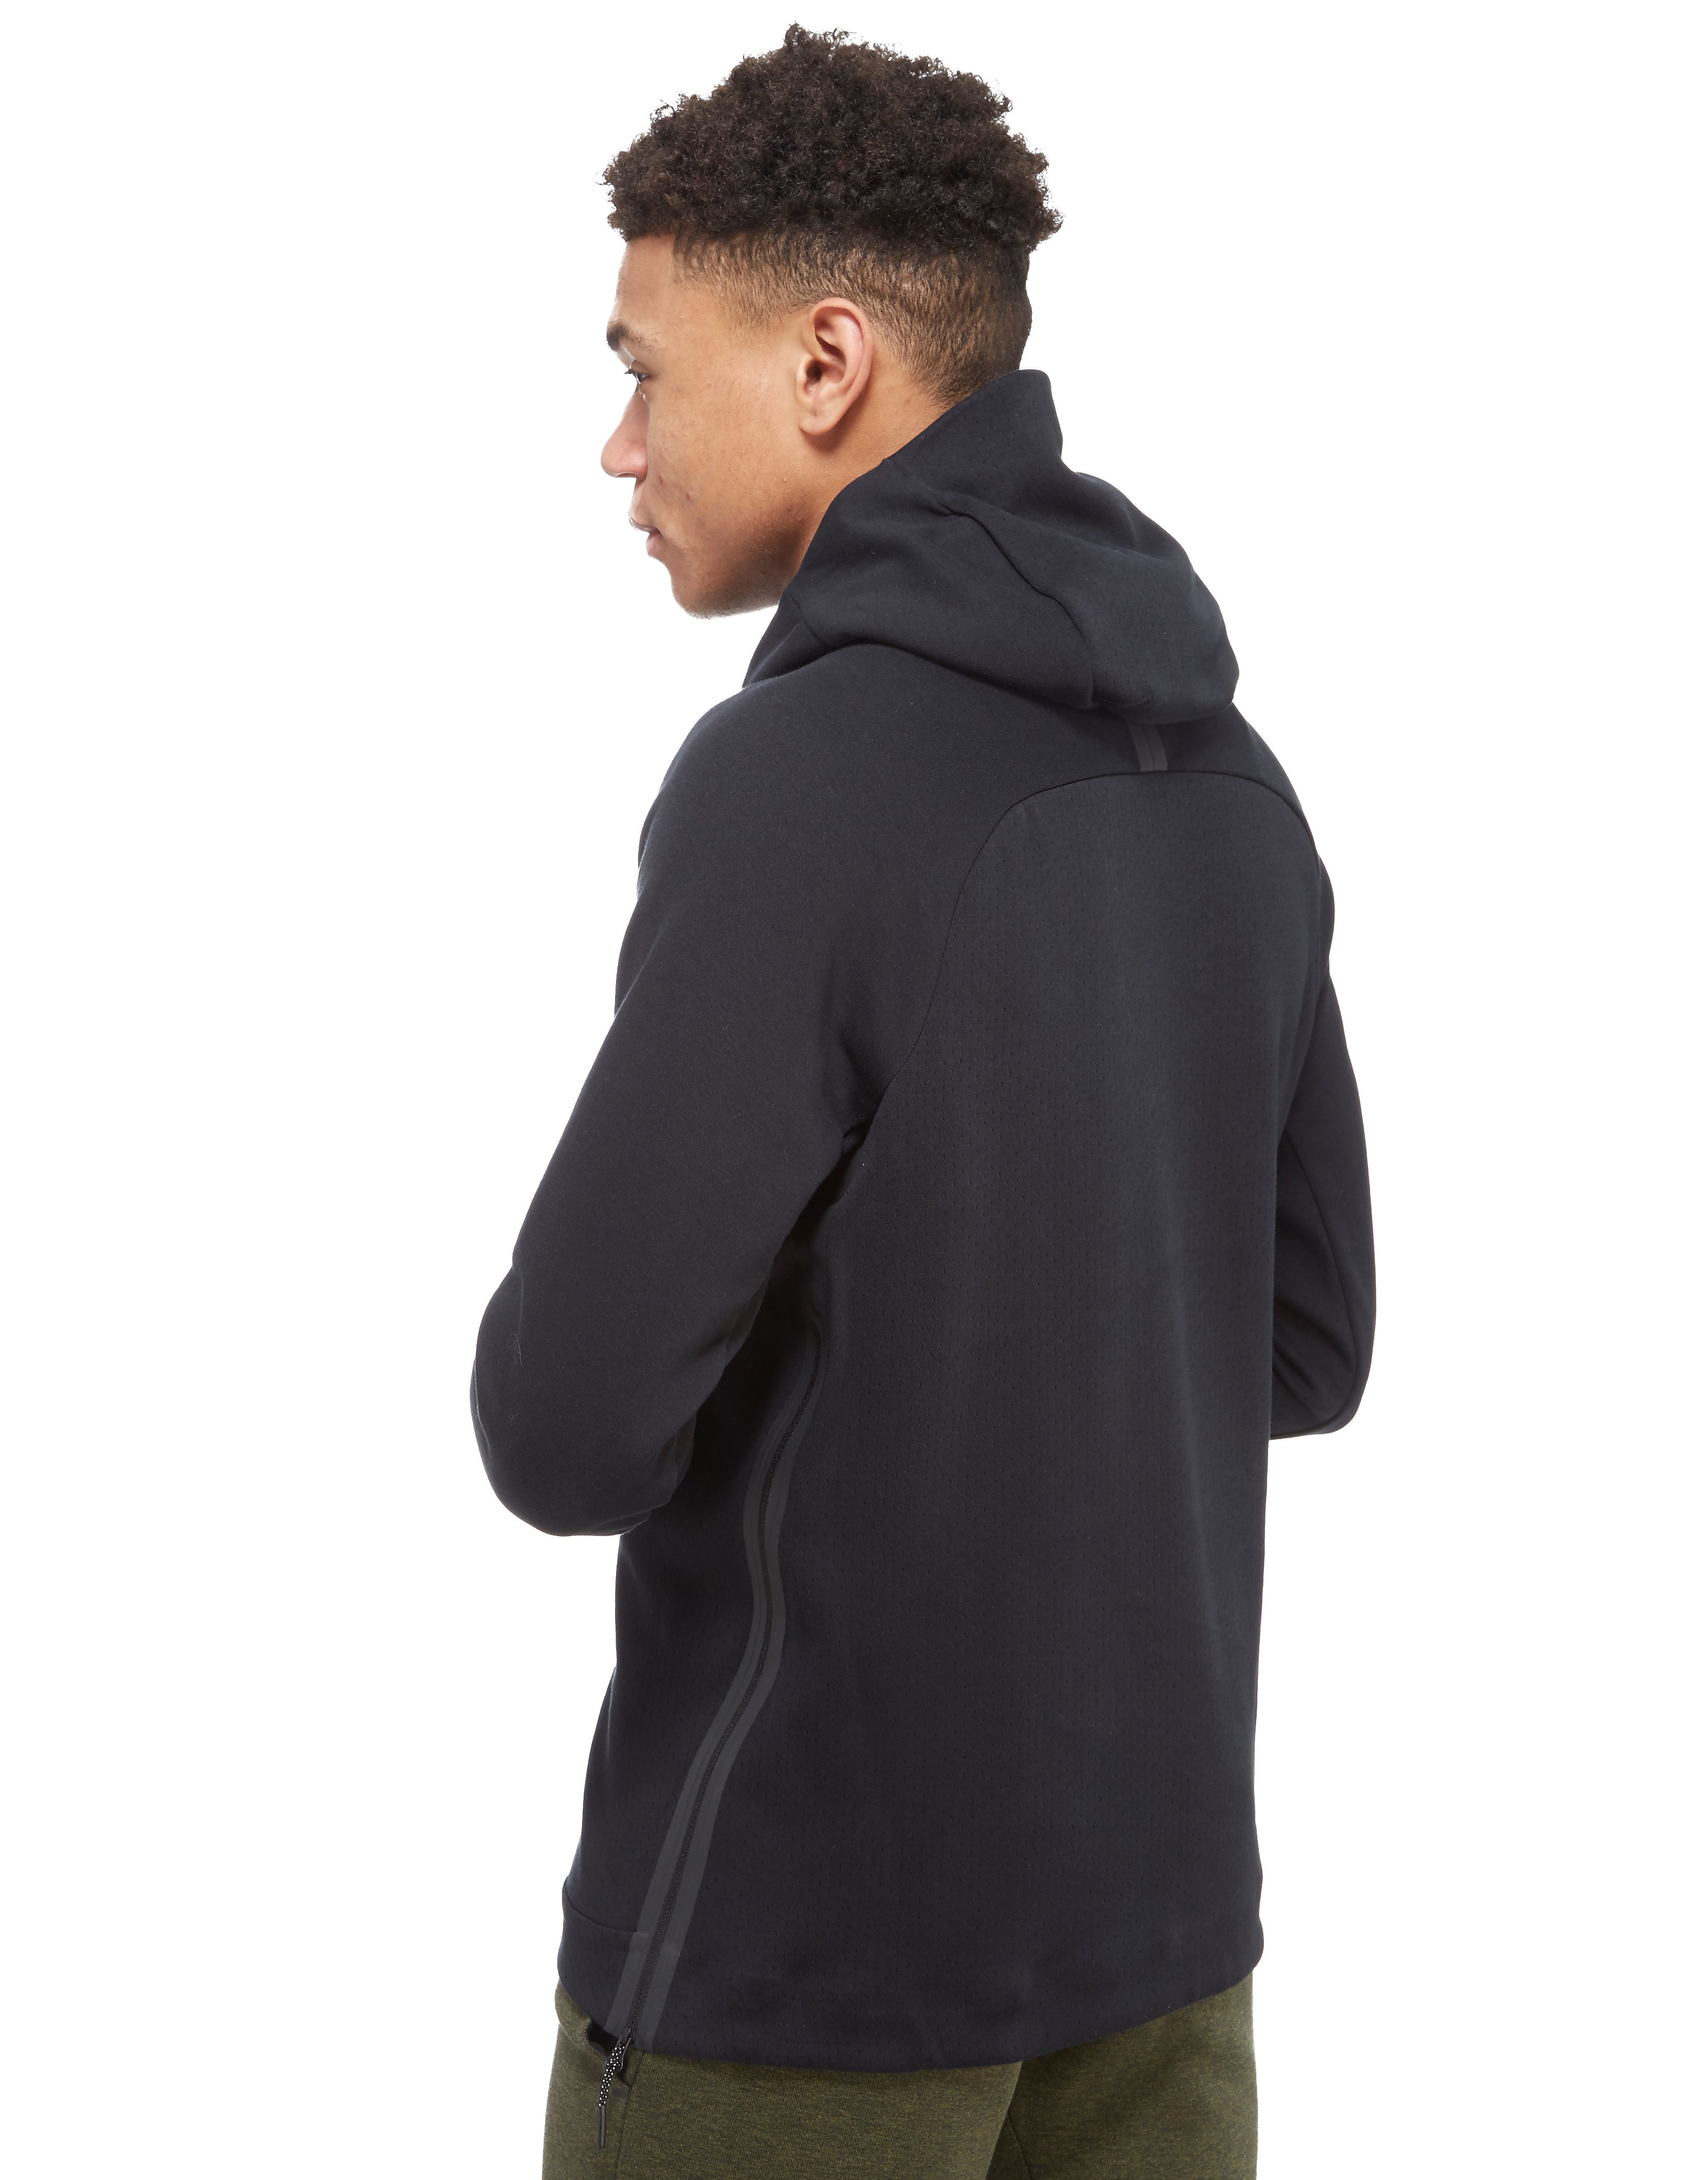 Nike Tech Fleece Mesh Overhead Hoody